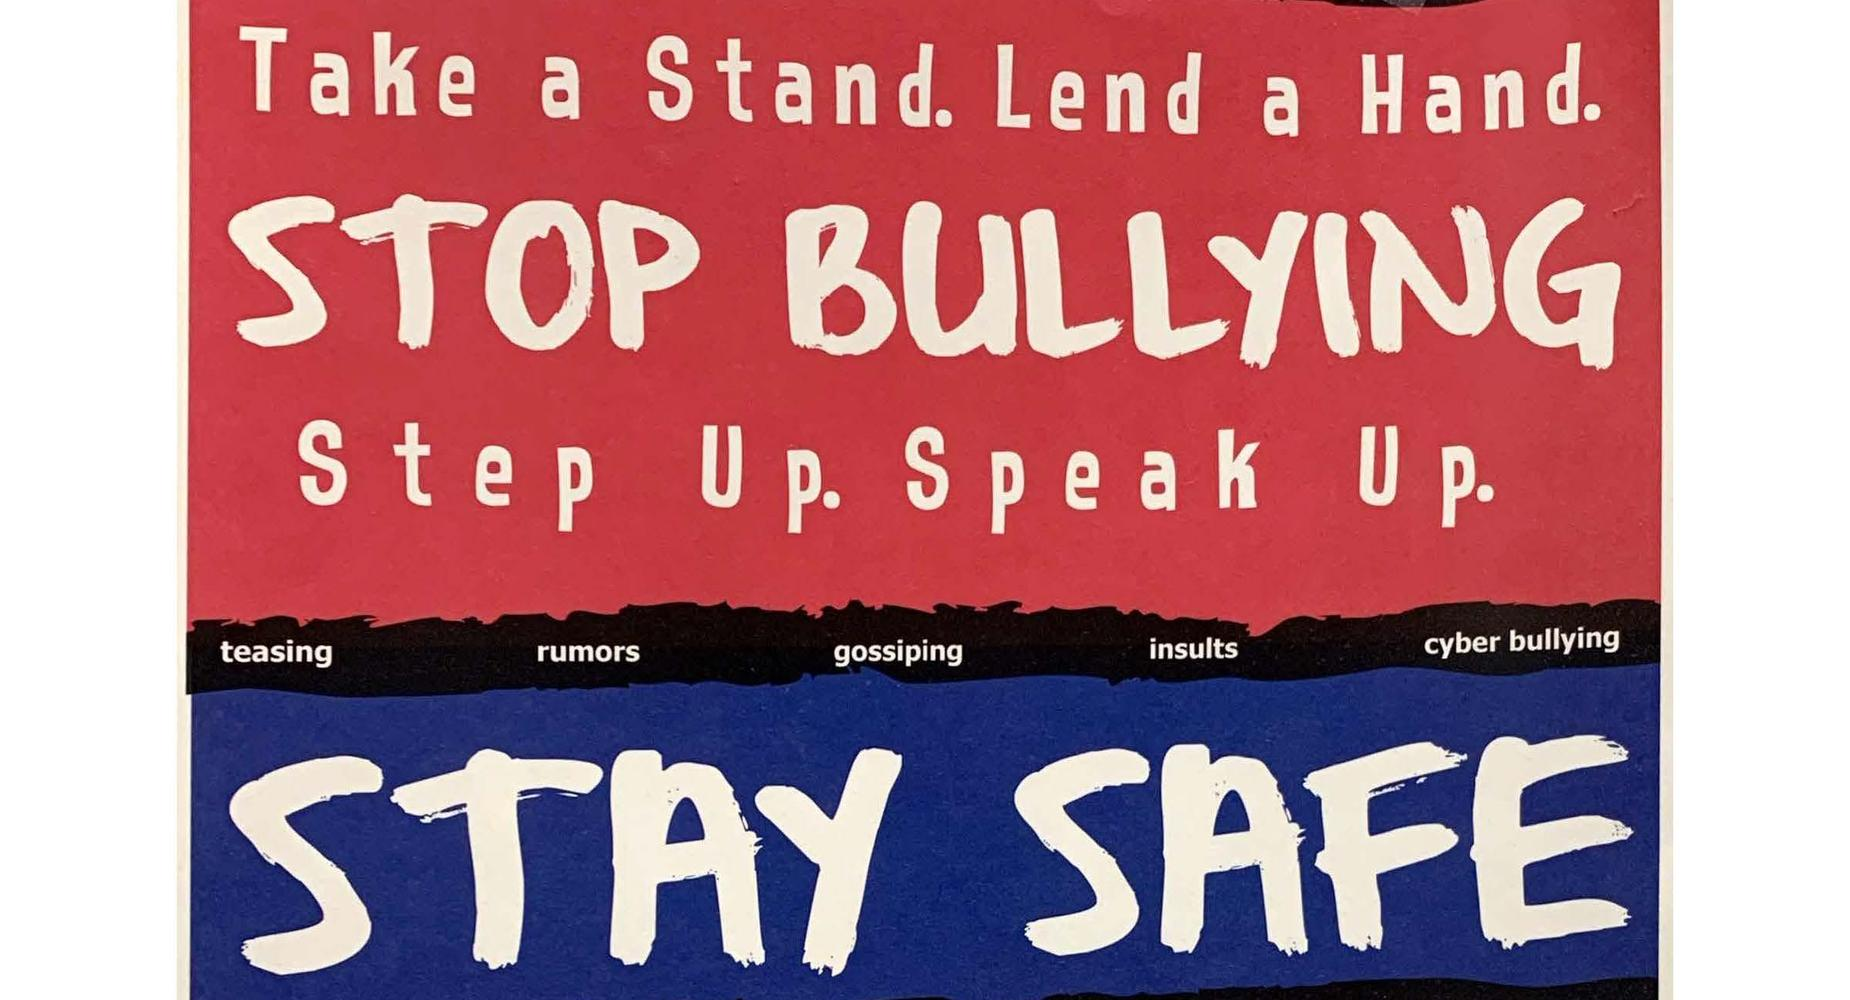 stop bullying - text or call - 562-888-0472